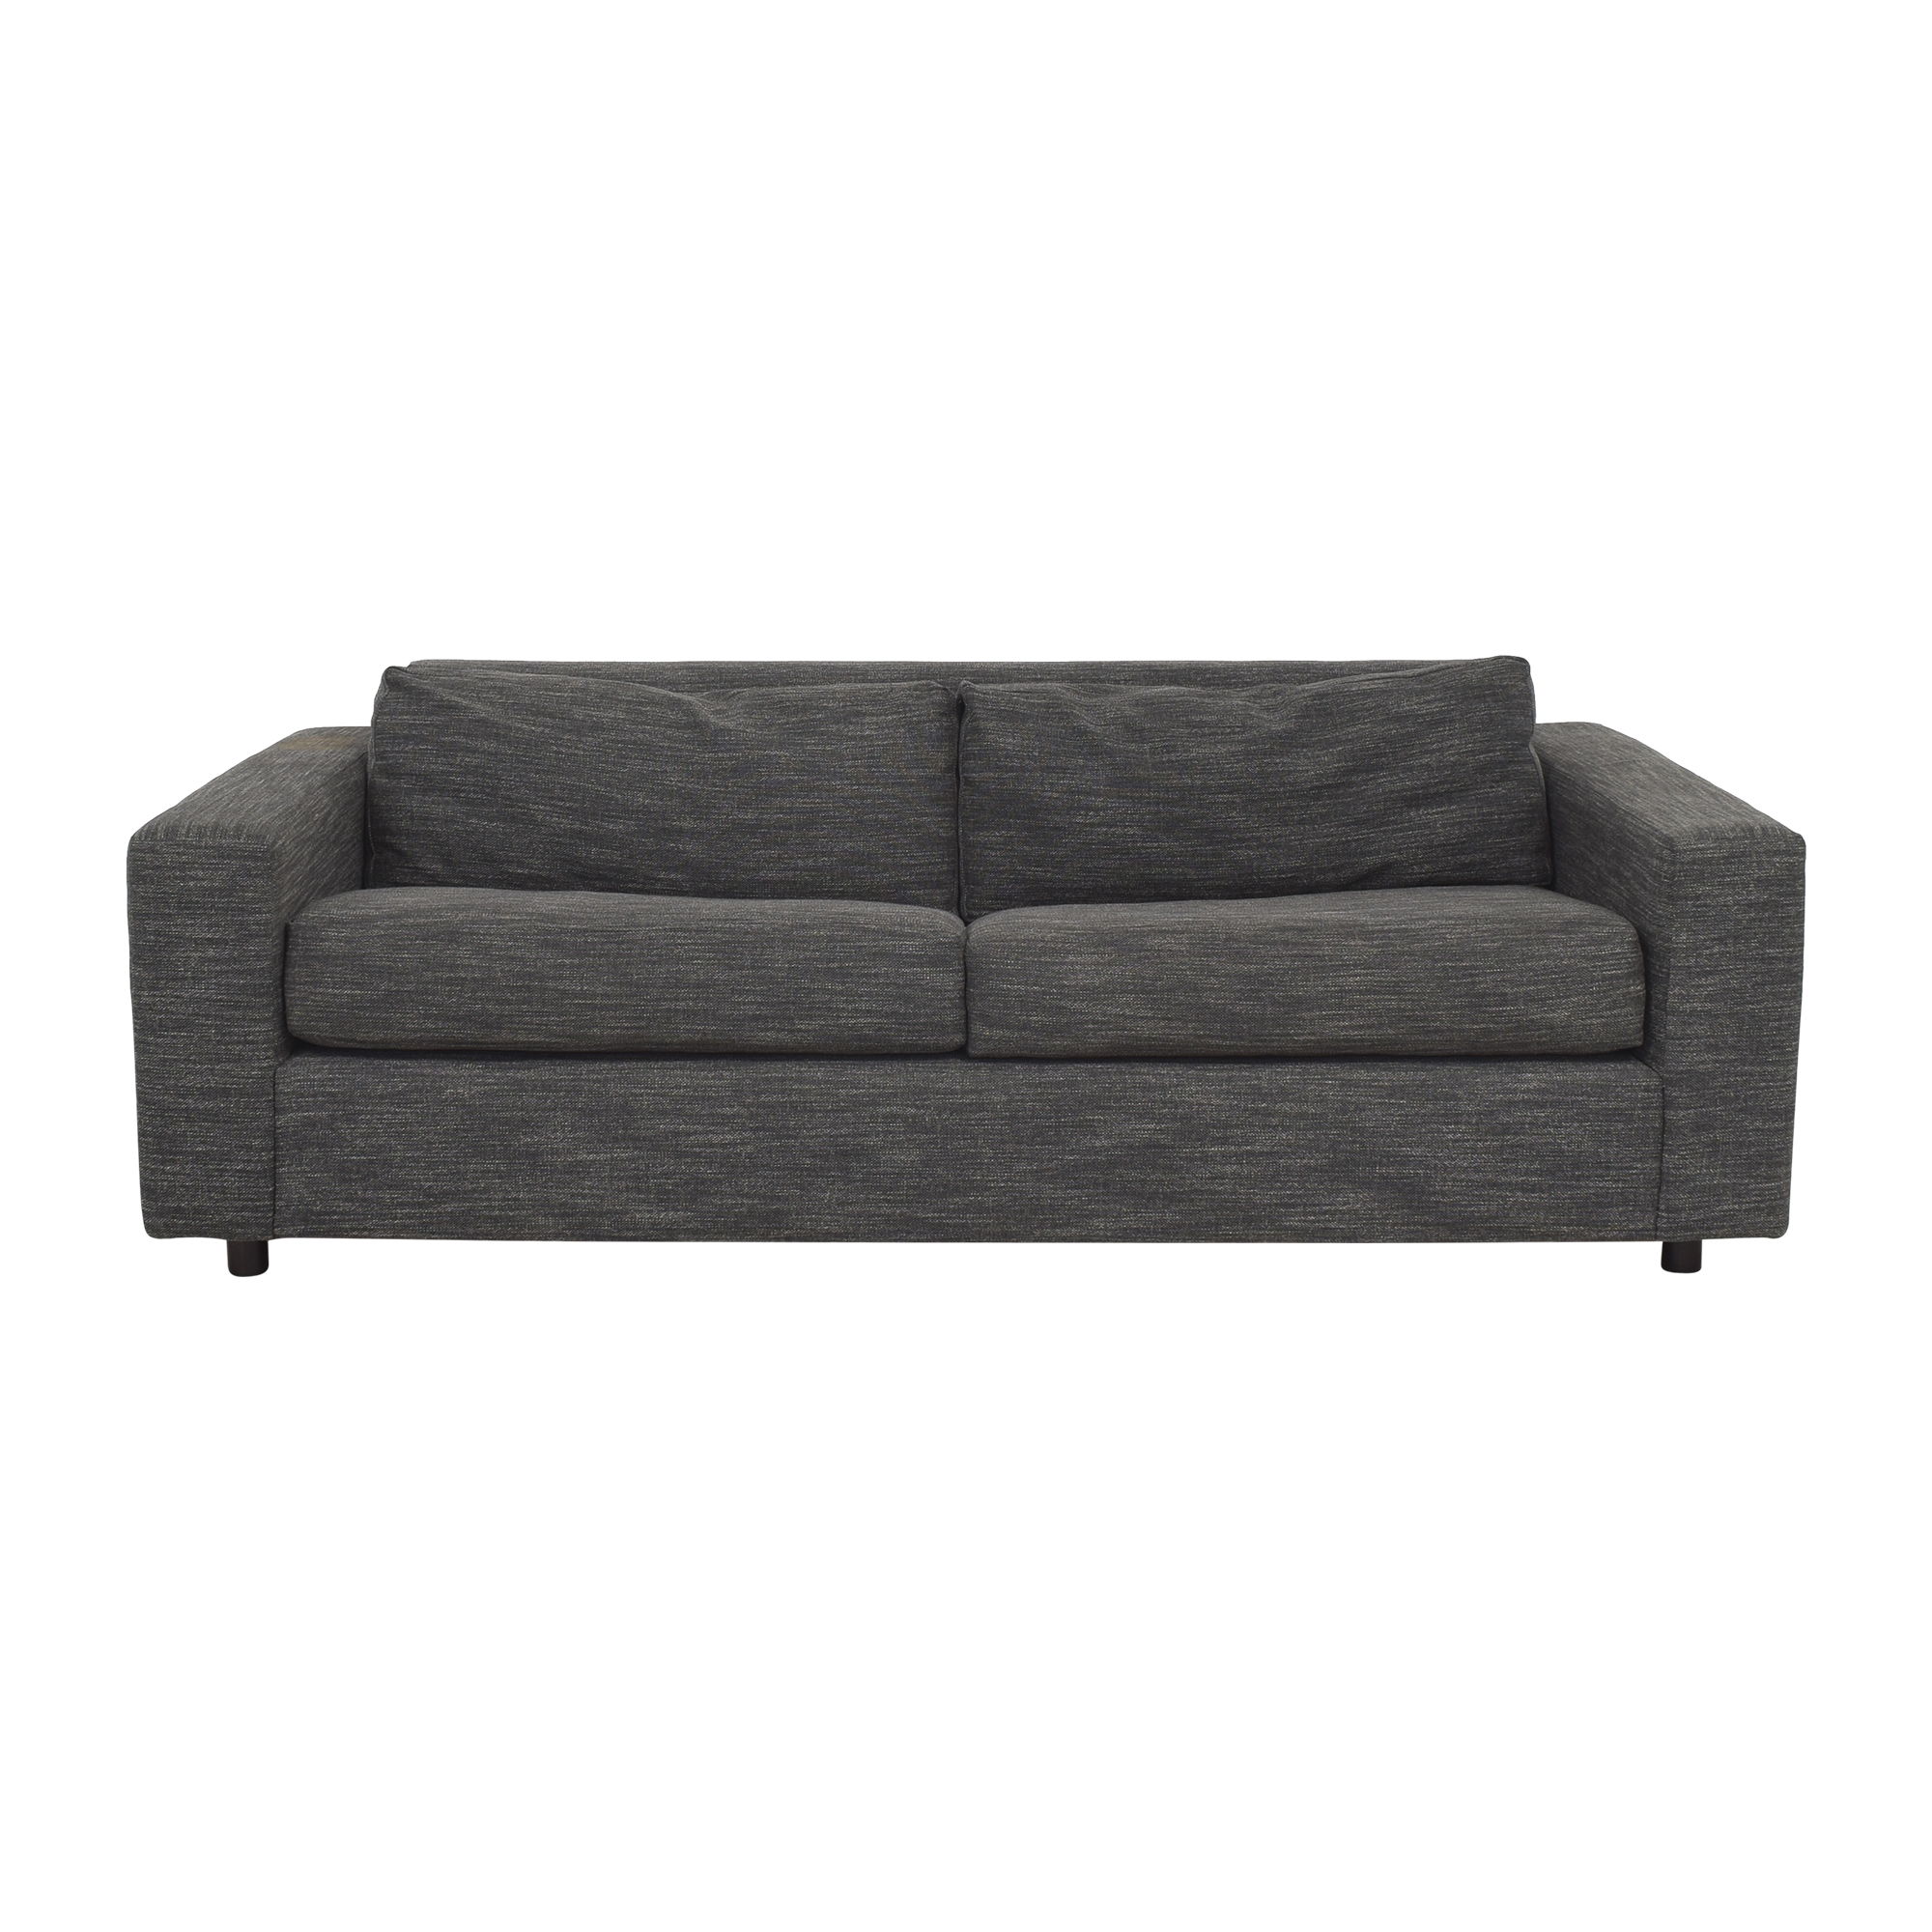 buy West Elm Urban Sleeper Sofa West Elm Sofas